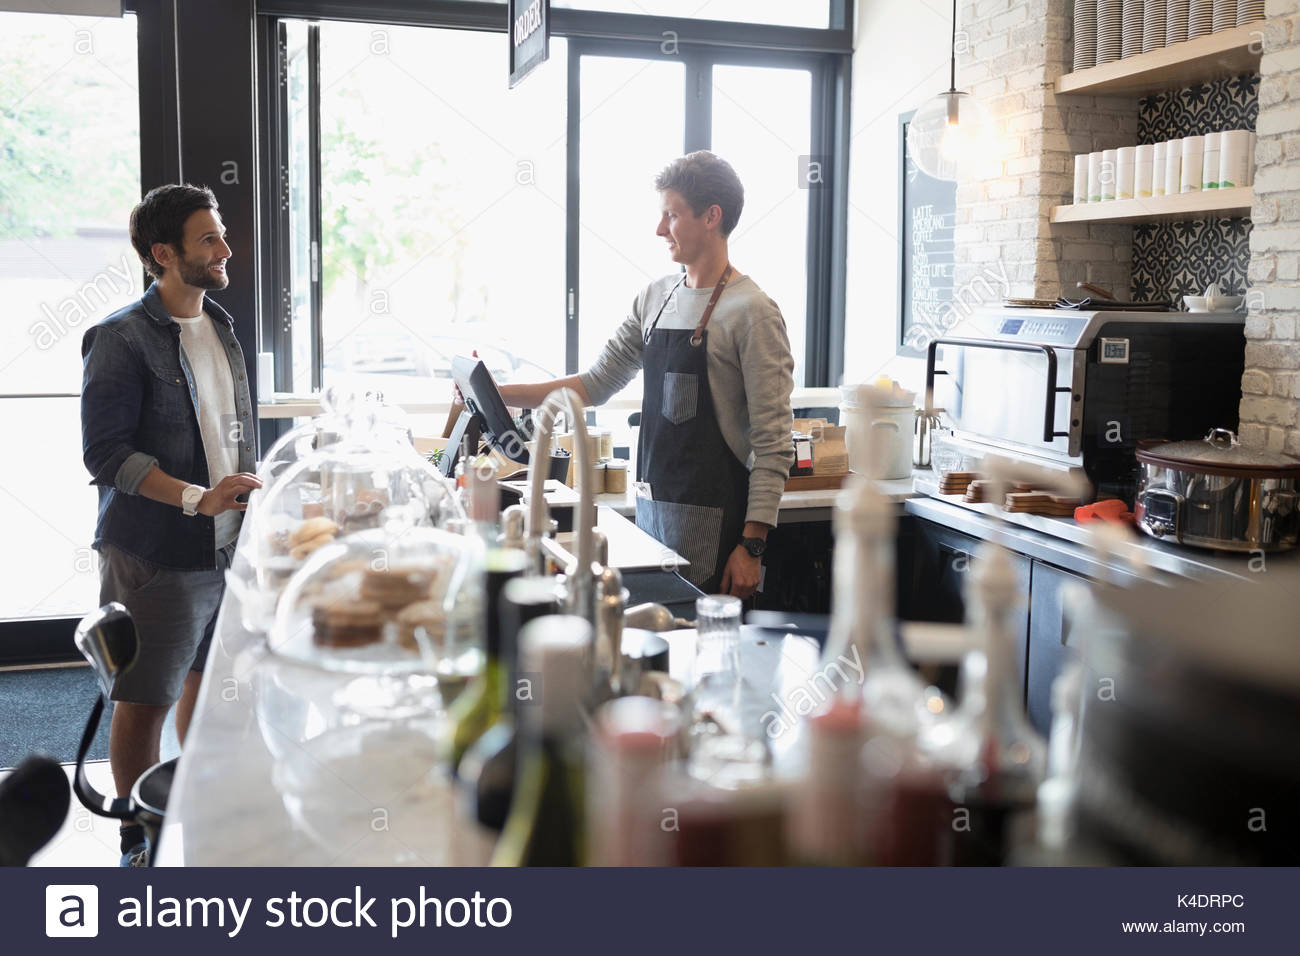 Male customer ordering from worker at cafe counter - Stock Image